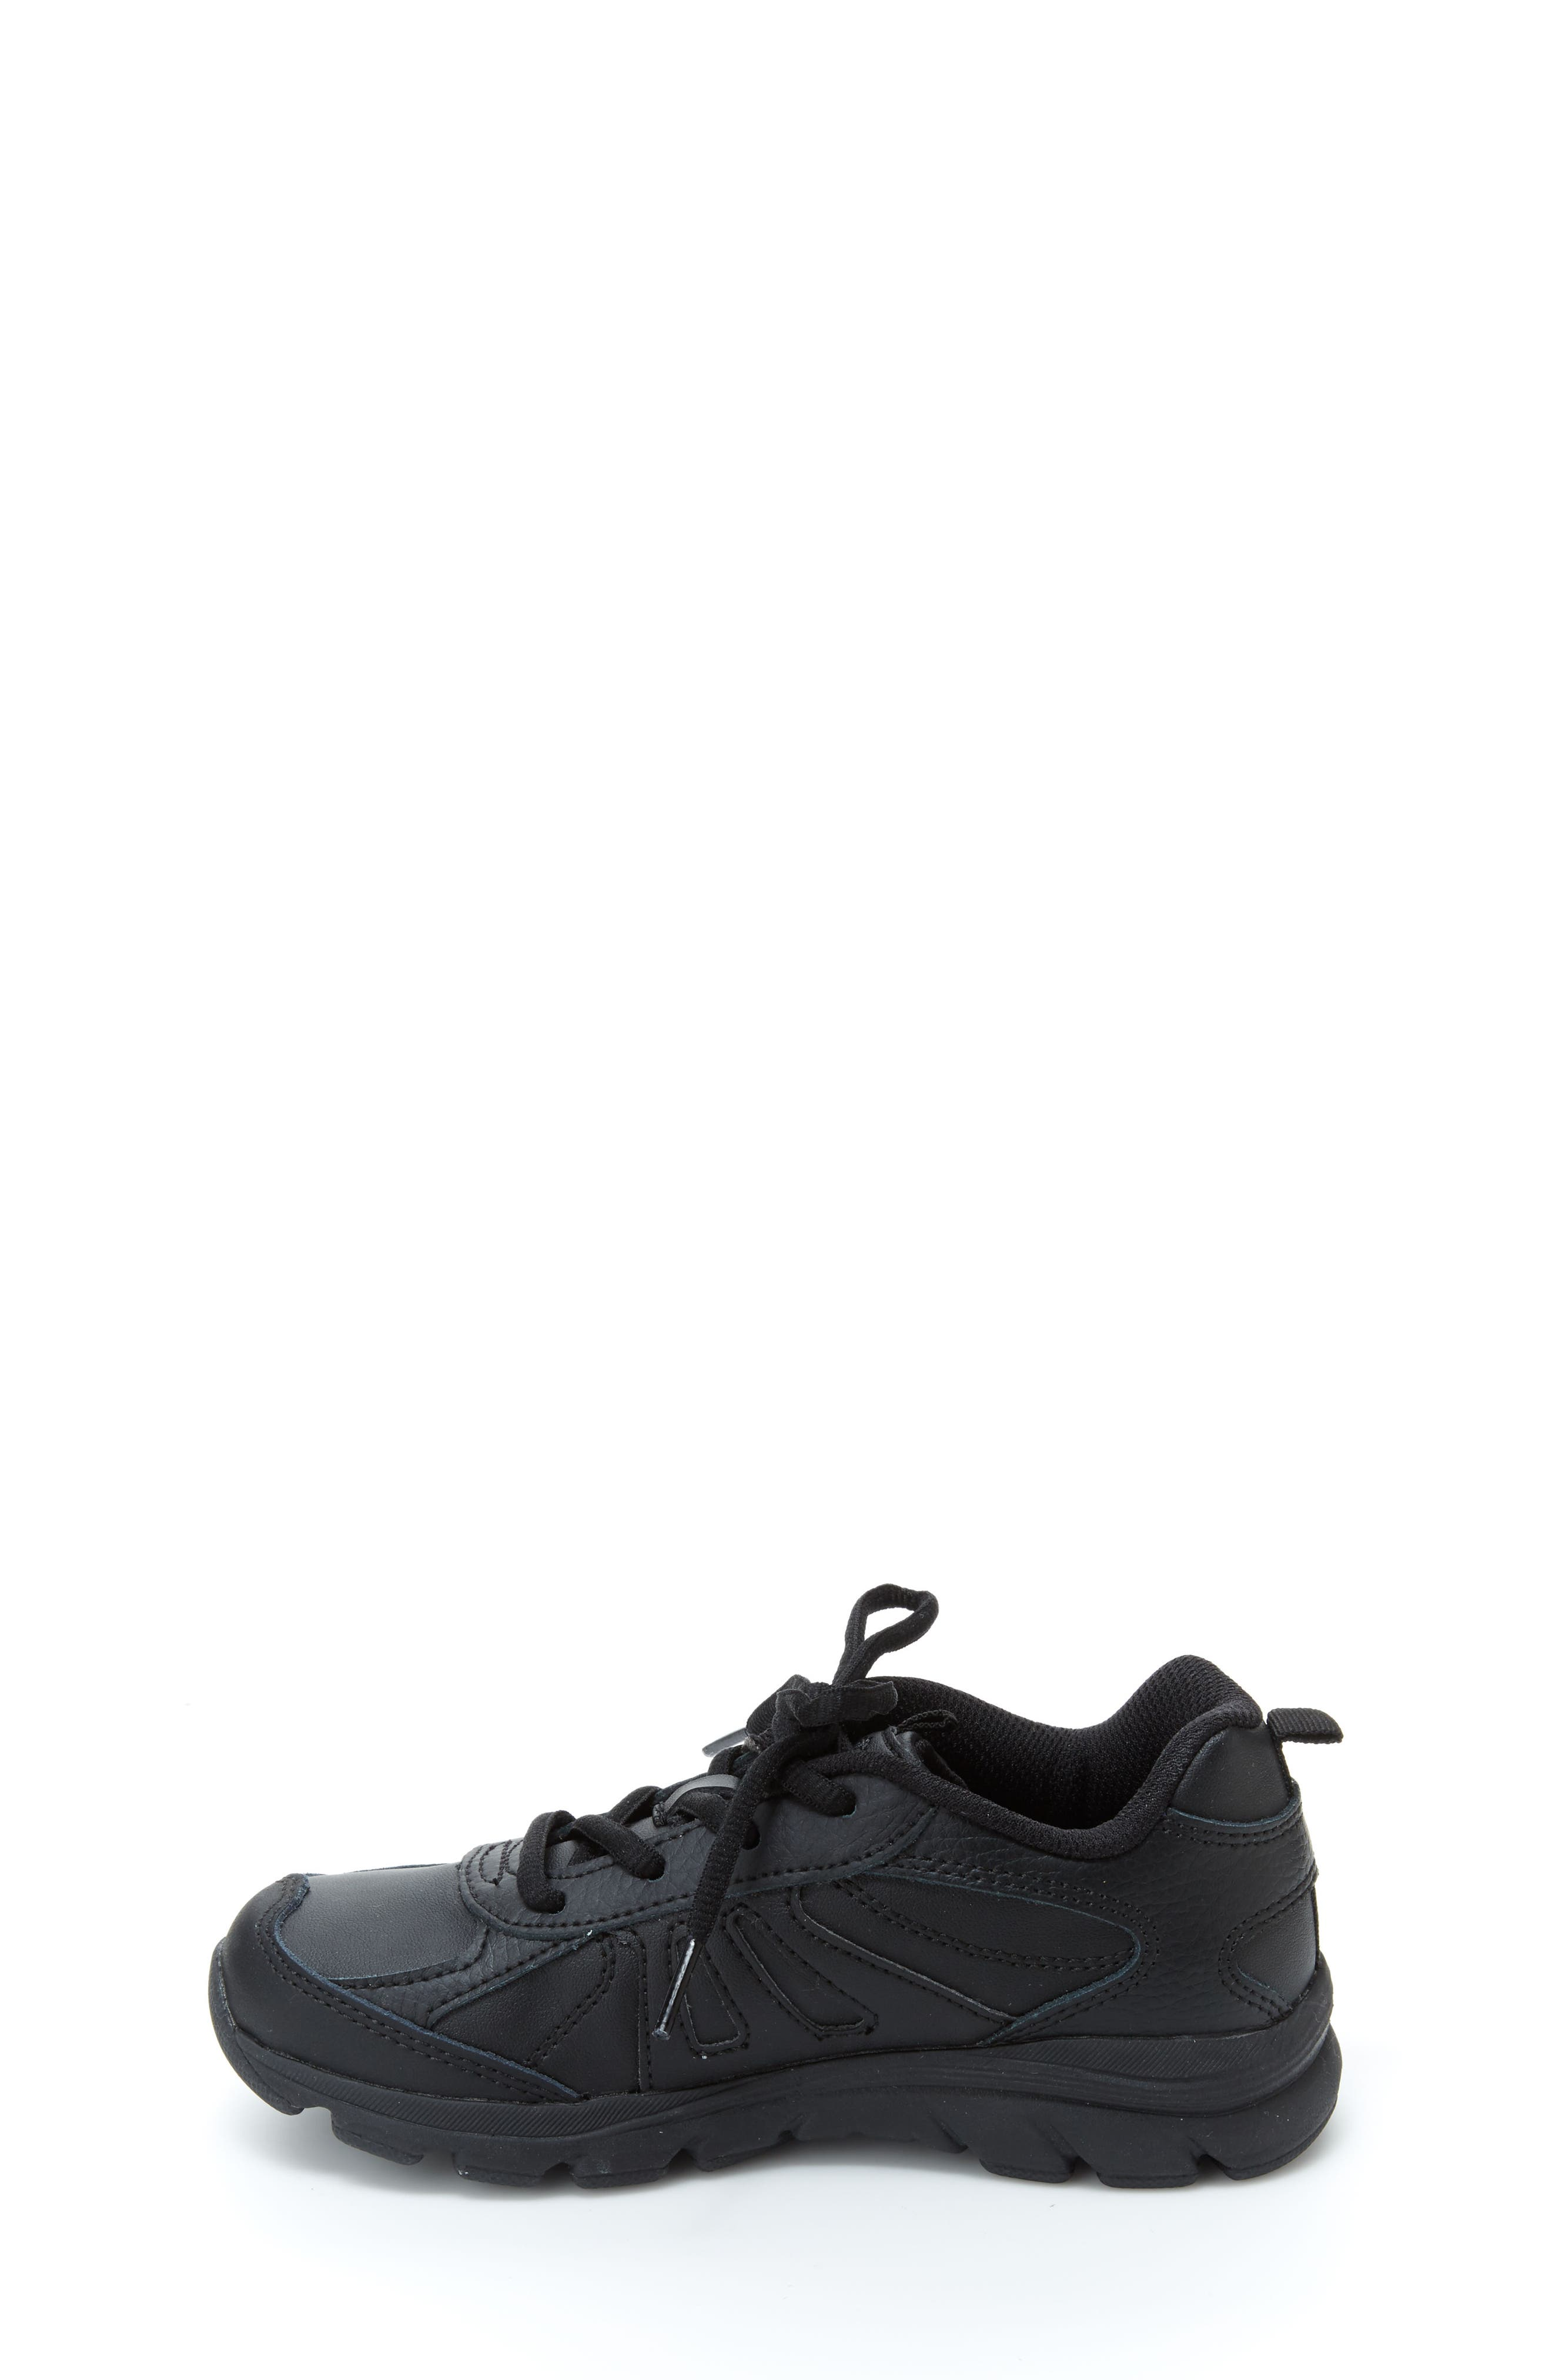 Cooper 2.0 Sneaker,                             Alternate thumbnail 7, color,                             BLACK